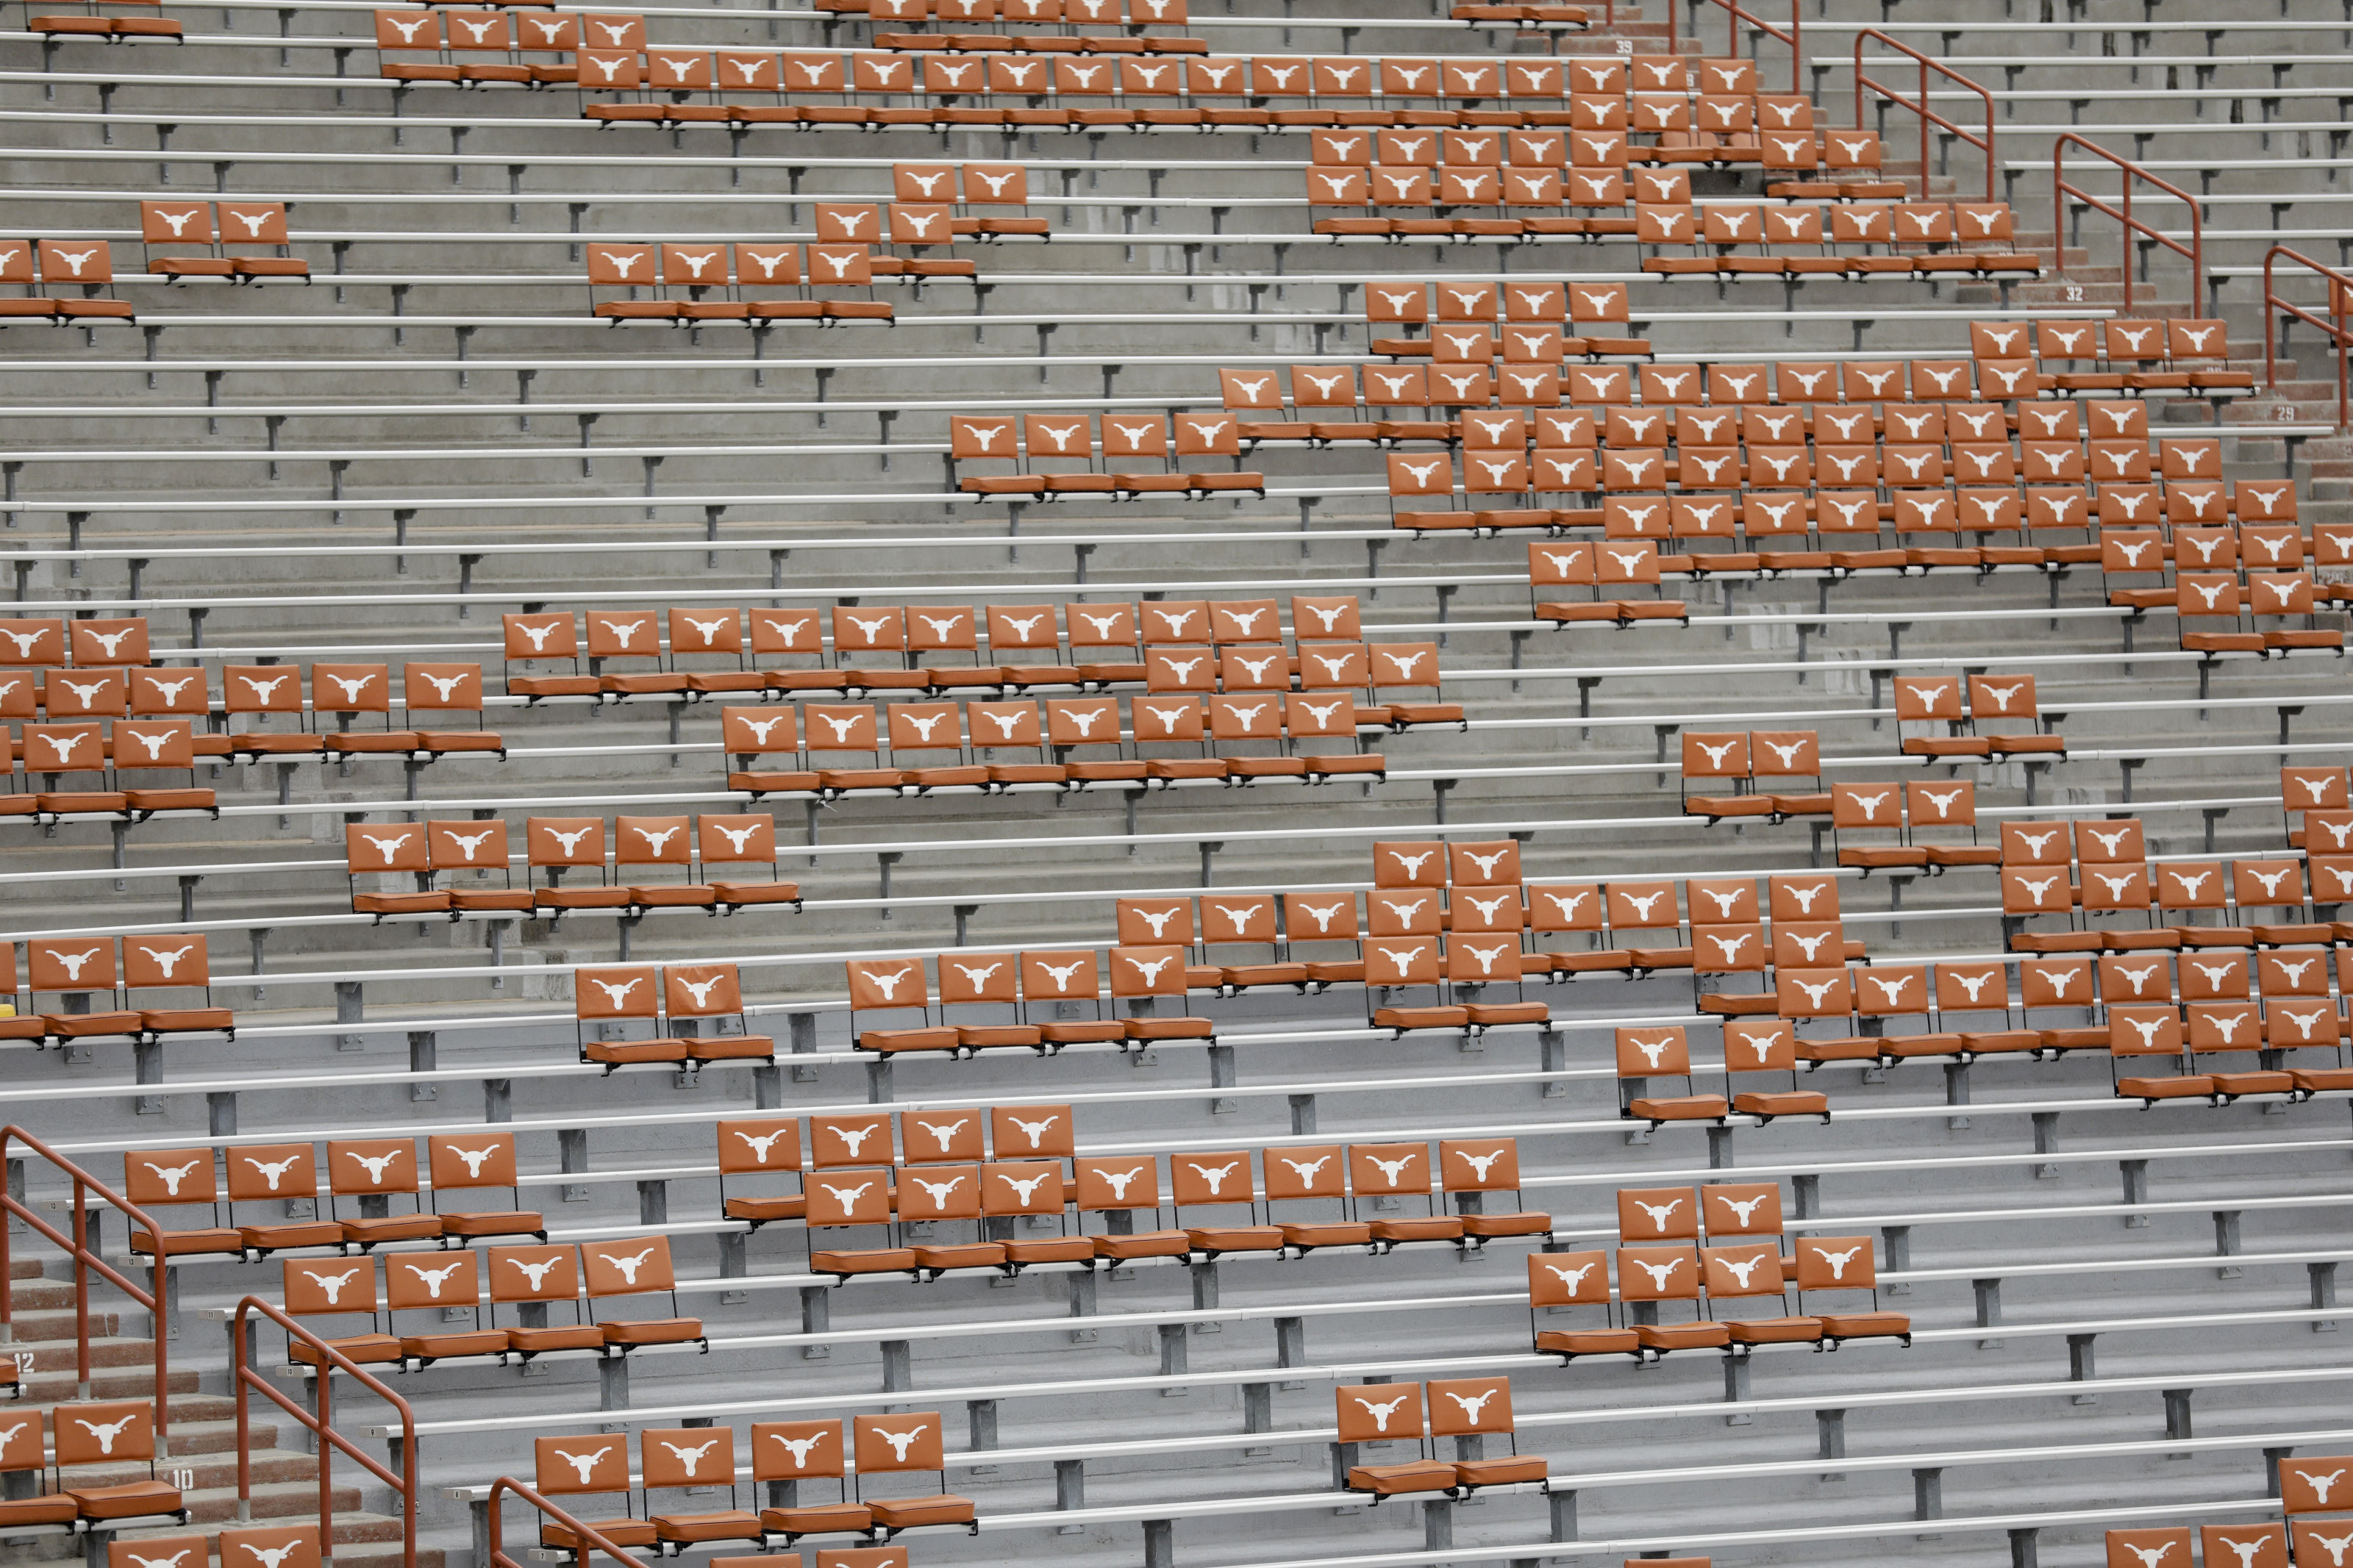 Texas Football Dkr Seating Capacity Will Be Limited To 50 In 2020